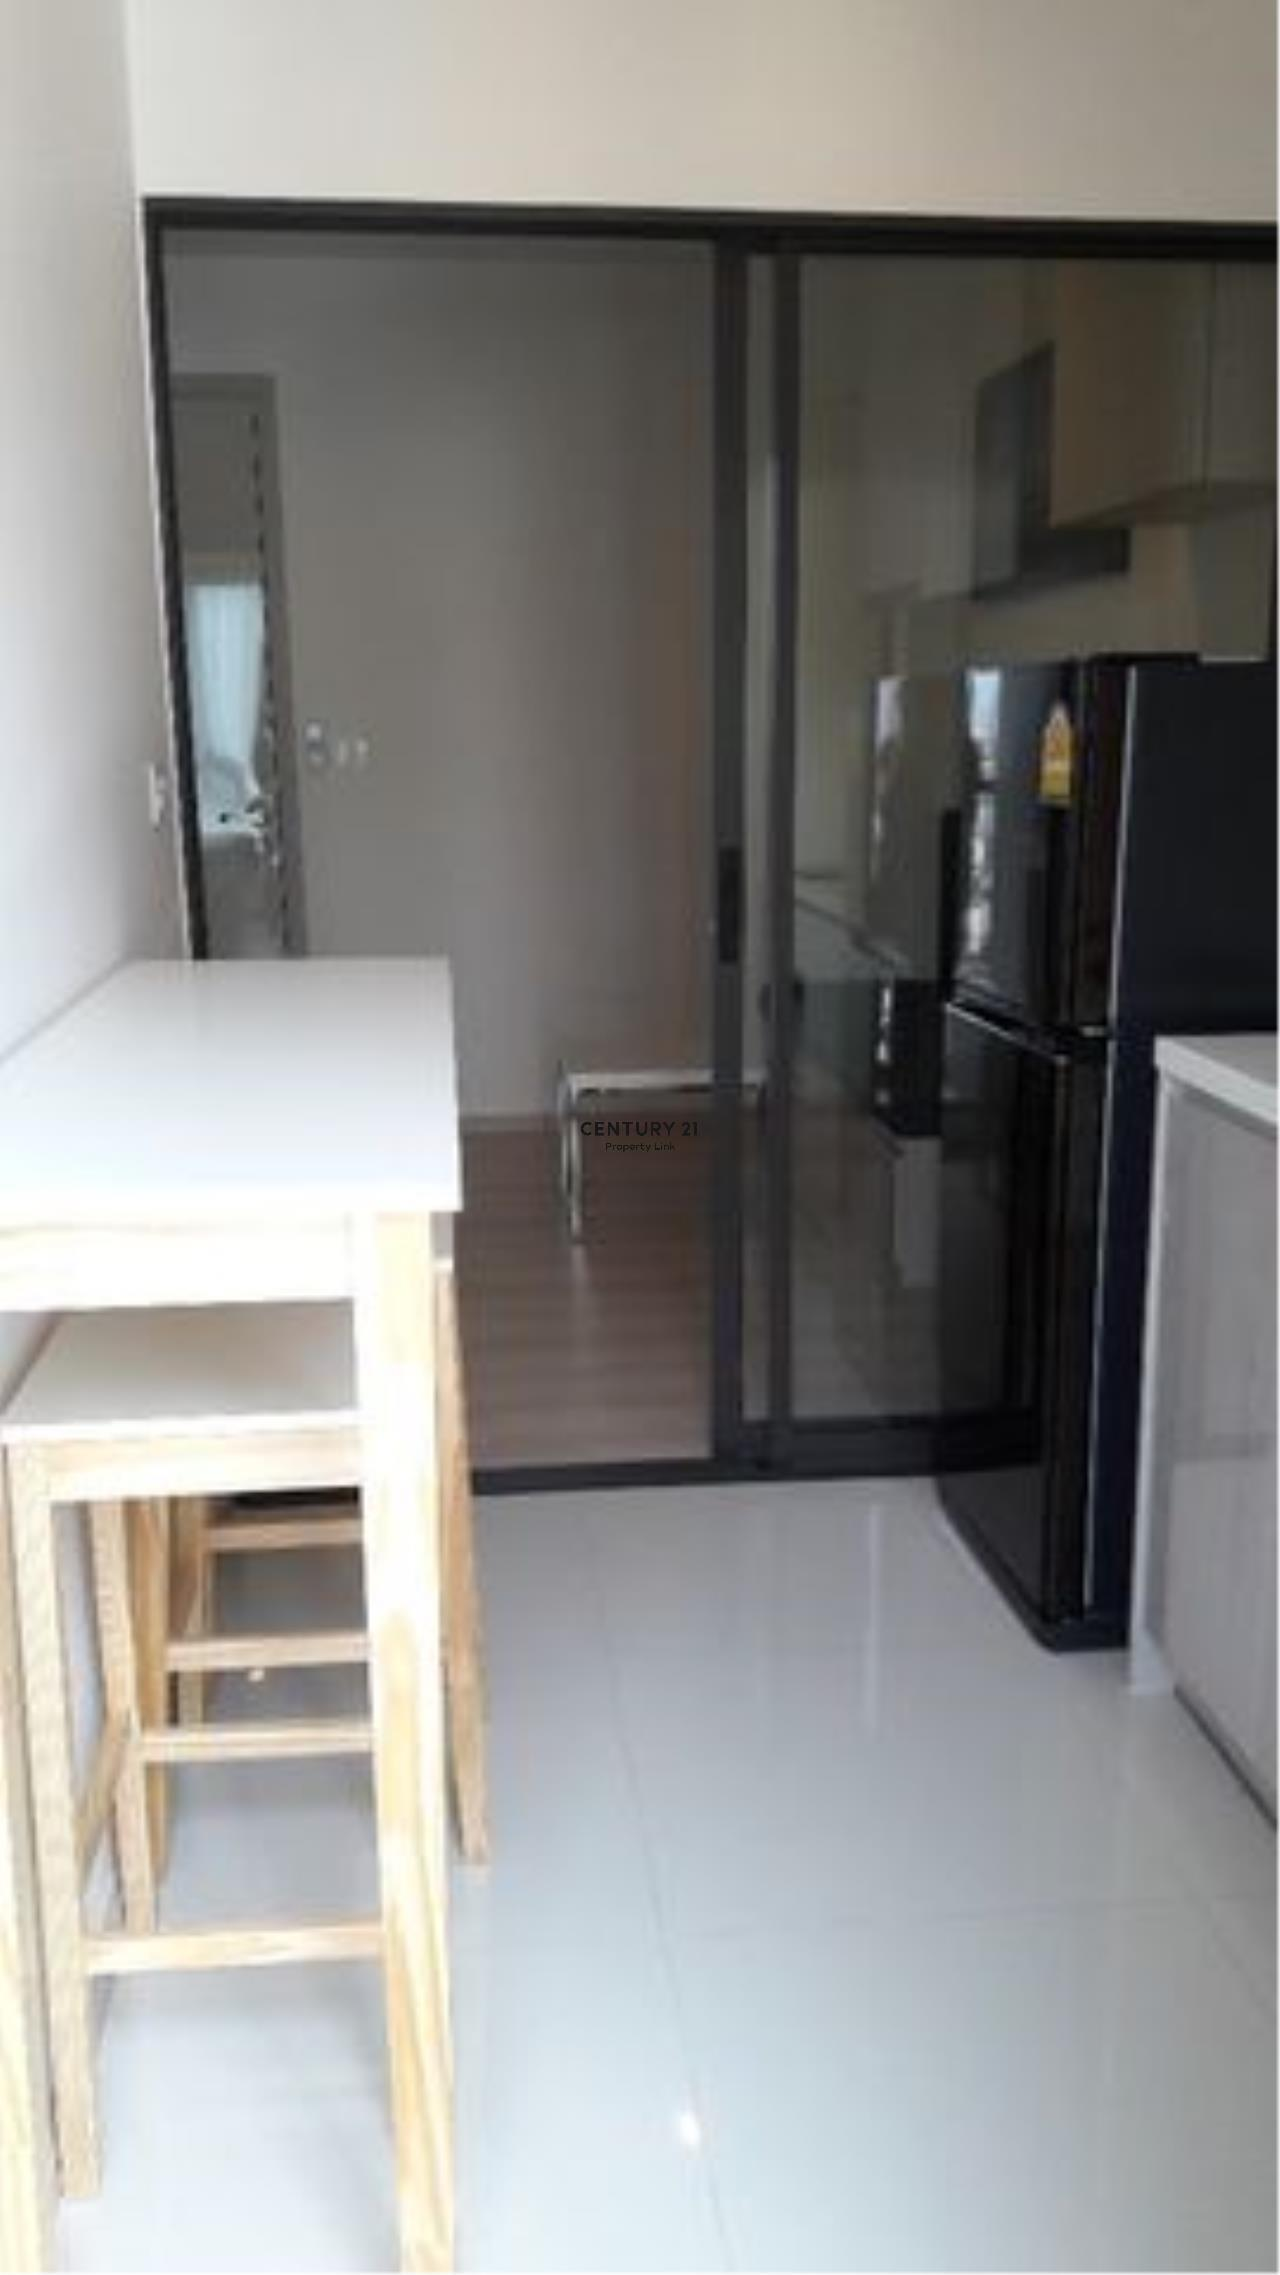 Century21 Property Link Agency's 39-CC-61353 Life Sukhumvit 48 Room For Rent Near BTS Phra Khanong Sukhumvit Road 1 Bedroom 18,000 THB./ month 5